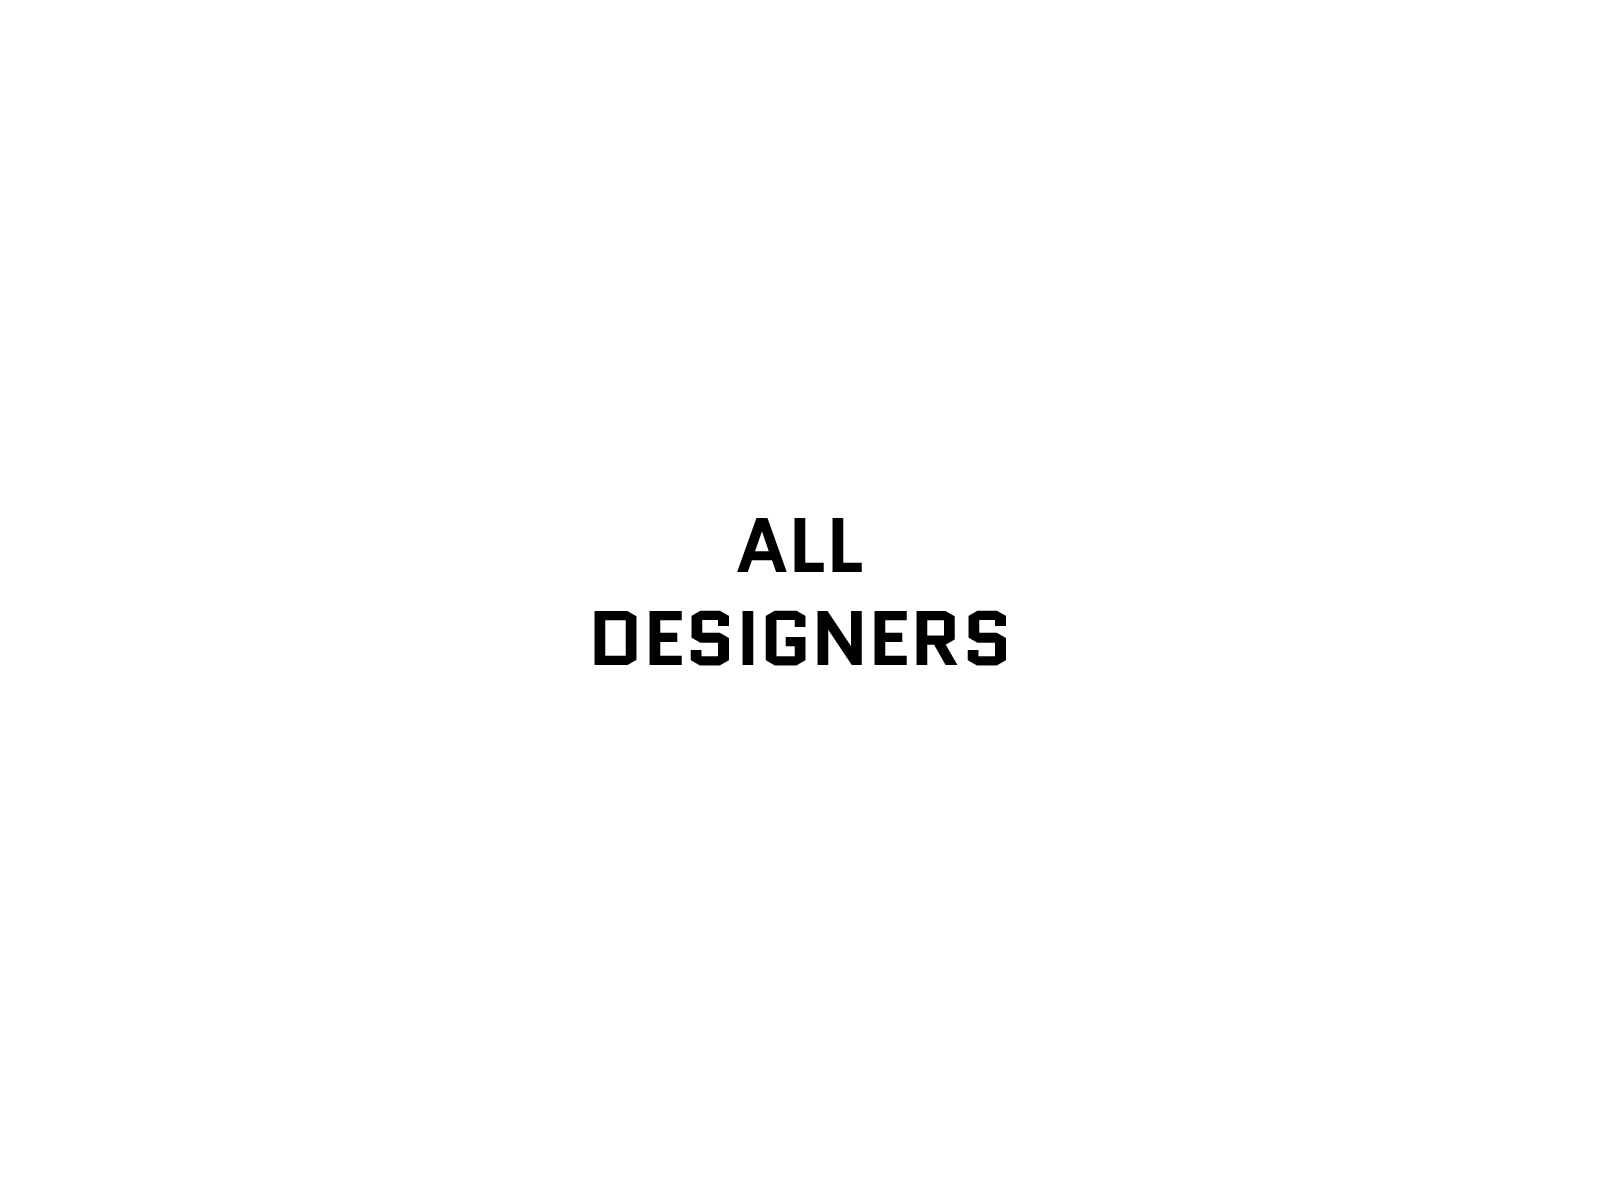 image of All Designers